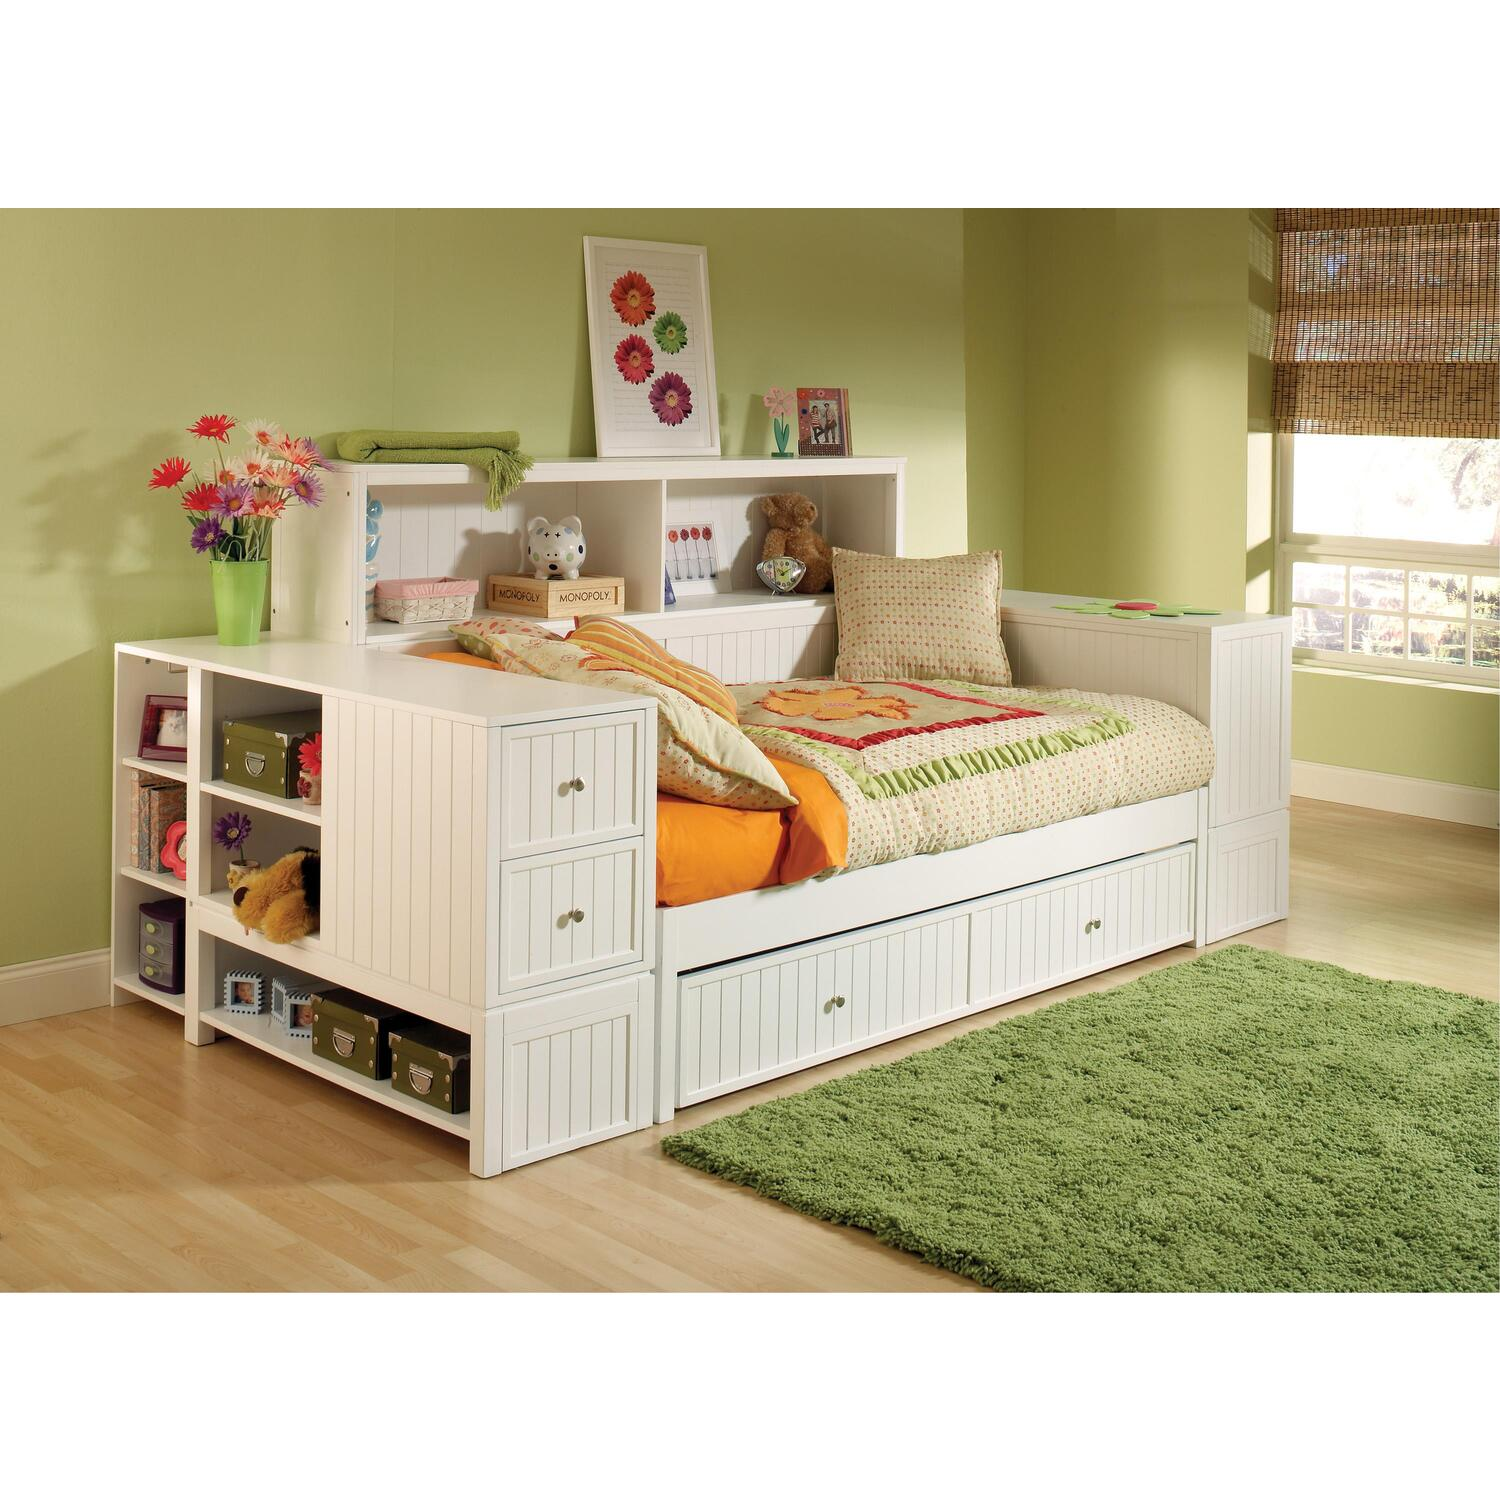 Hillsdale Furniture Cody Youth Bedroom Bookcase Daybed Unit By Oj Commerce 1604dbtbd 2 580 99